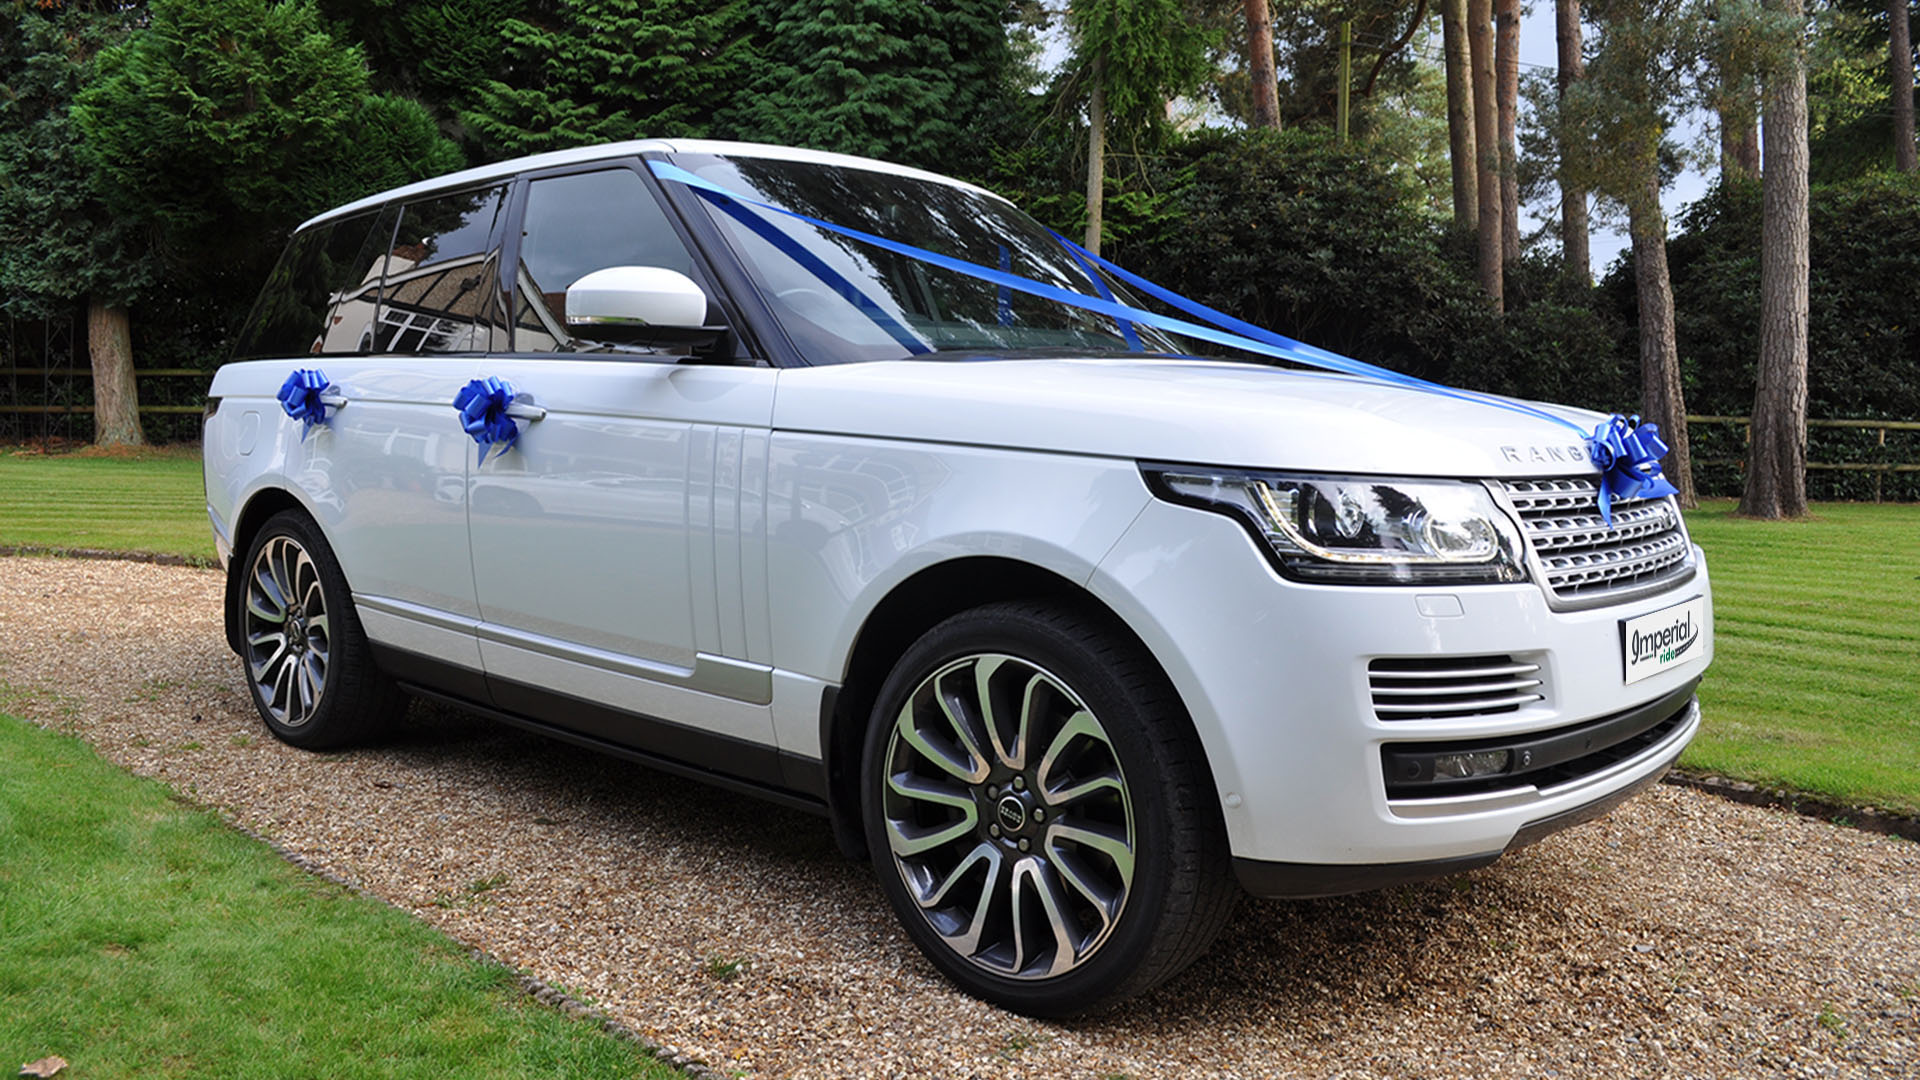 range-rover-wedding-hire-in-waltham-forest